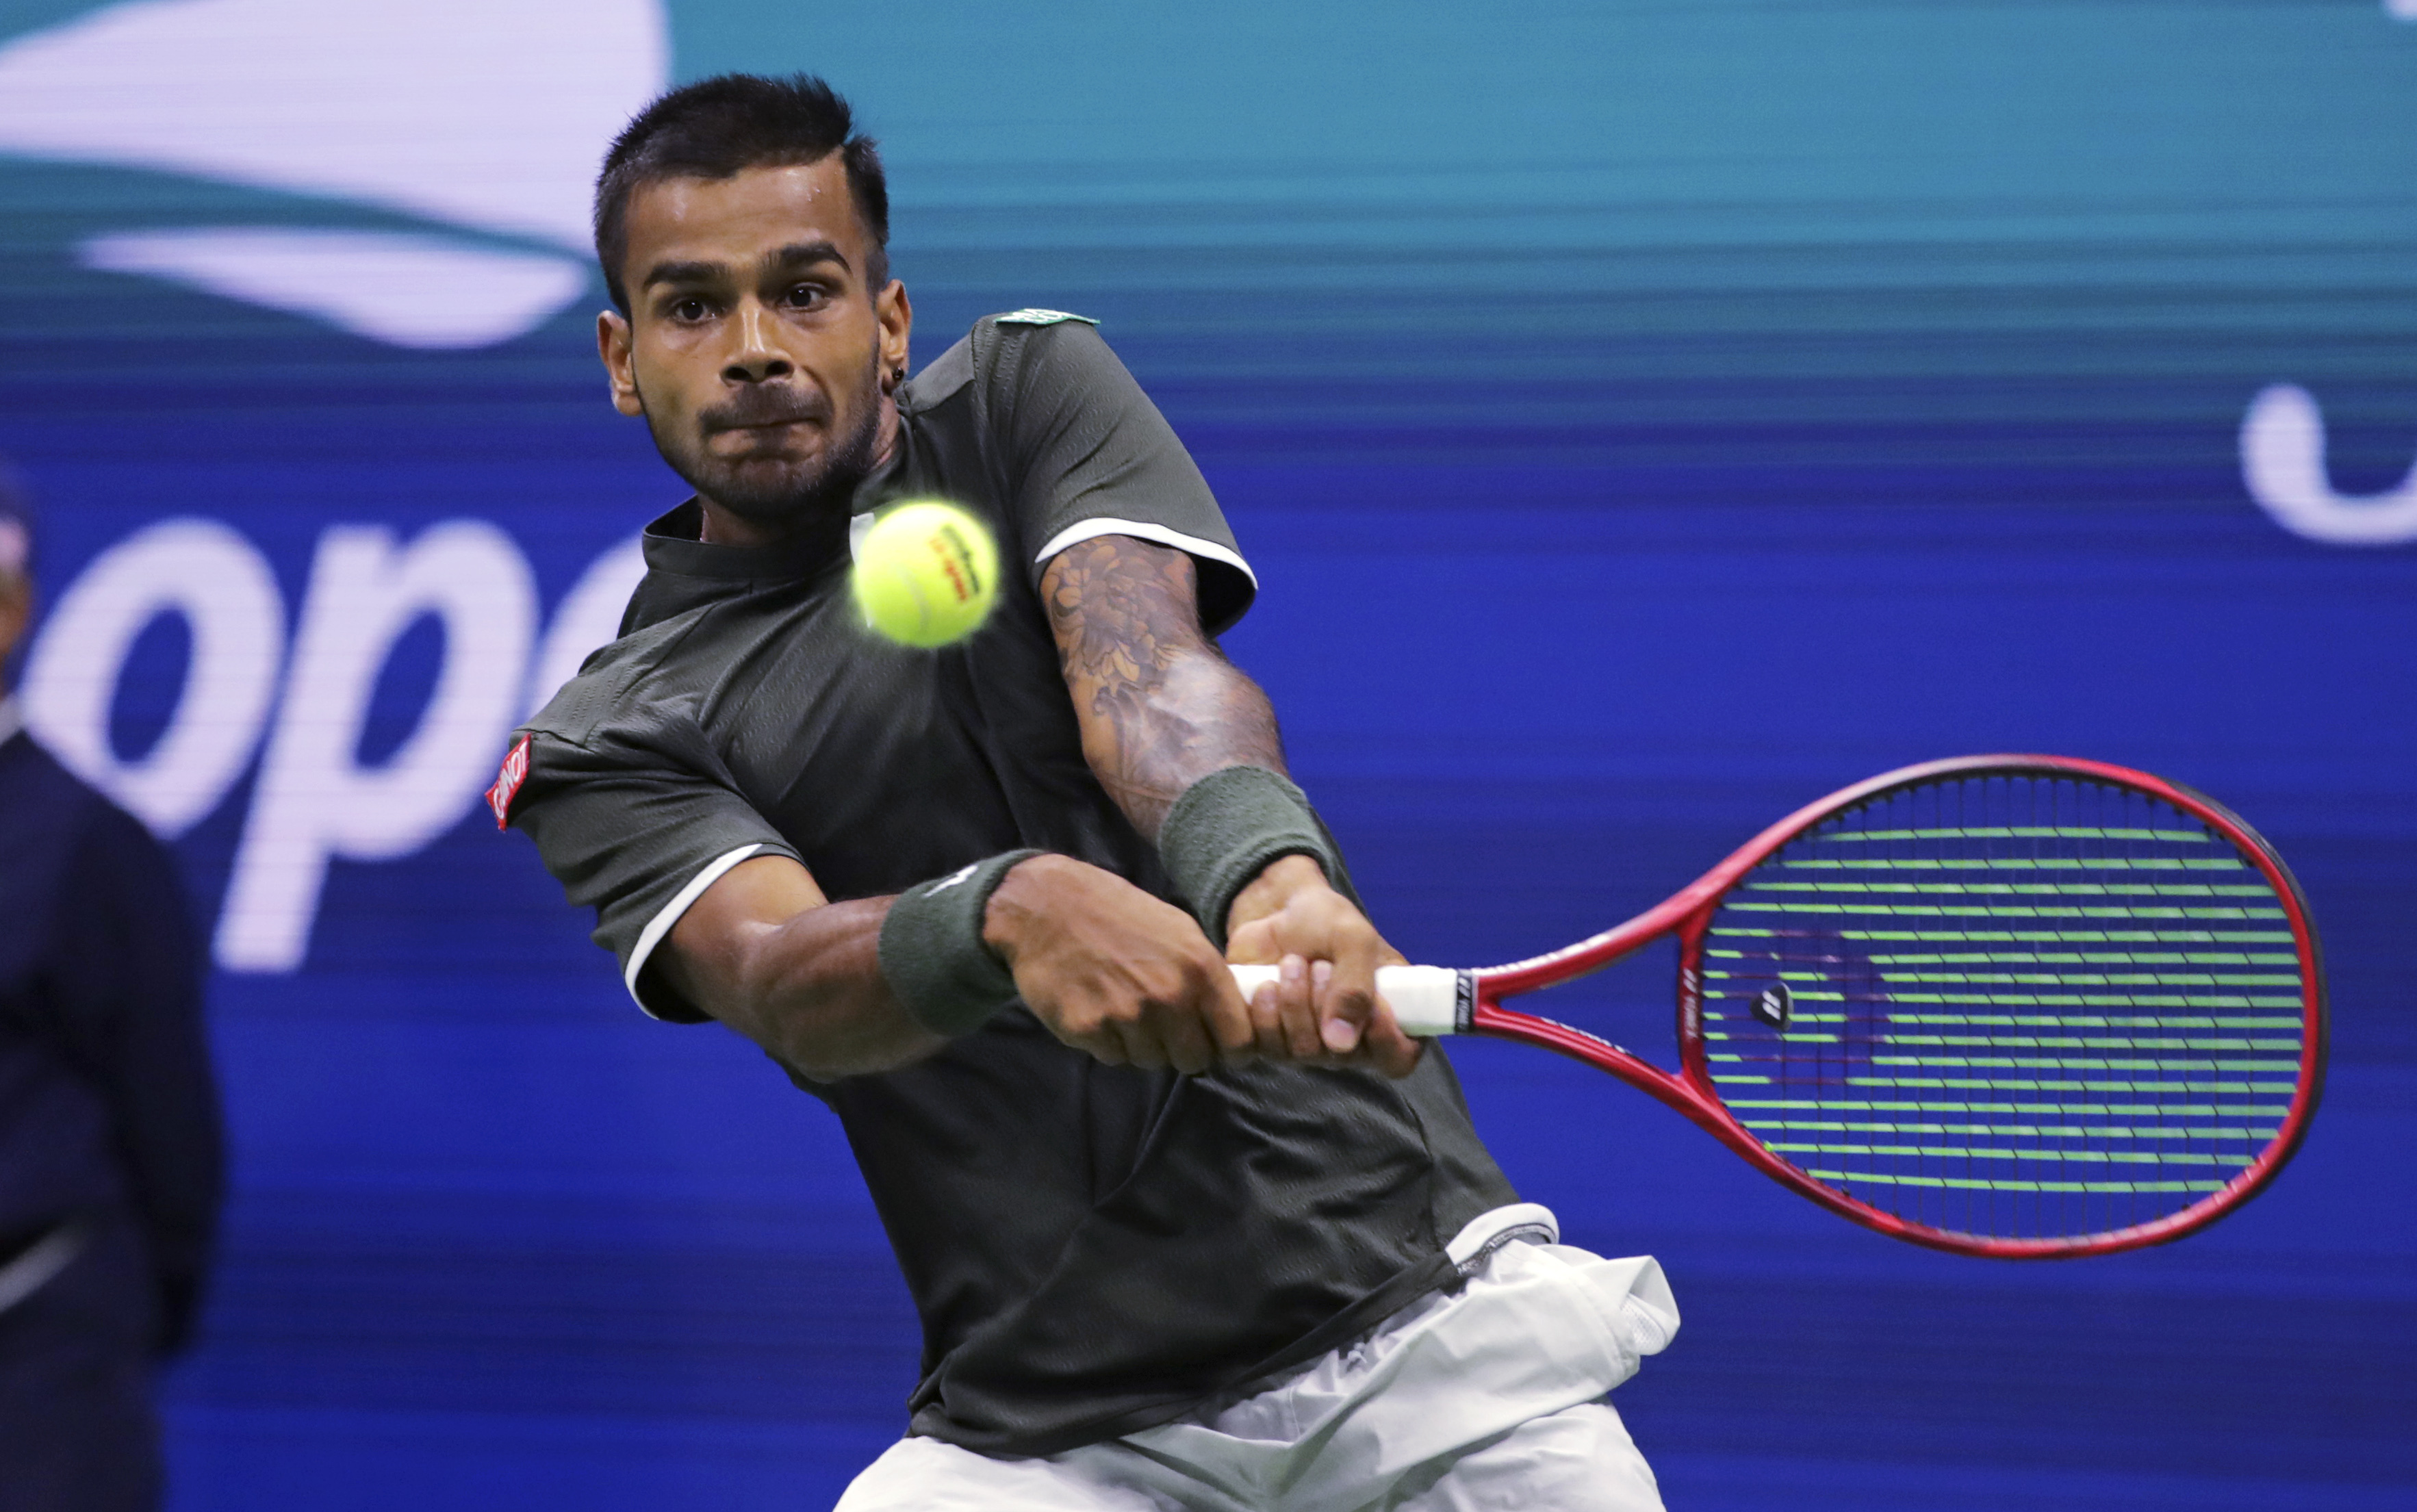 Sumit Nagal returns to Roger Federer during the first round of the US Open in New York.